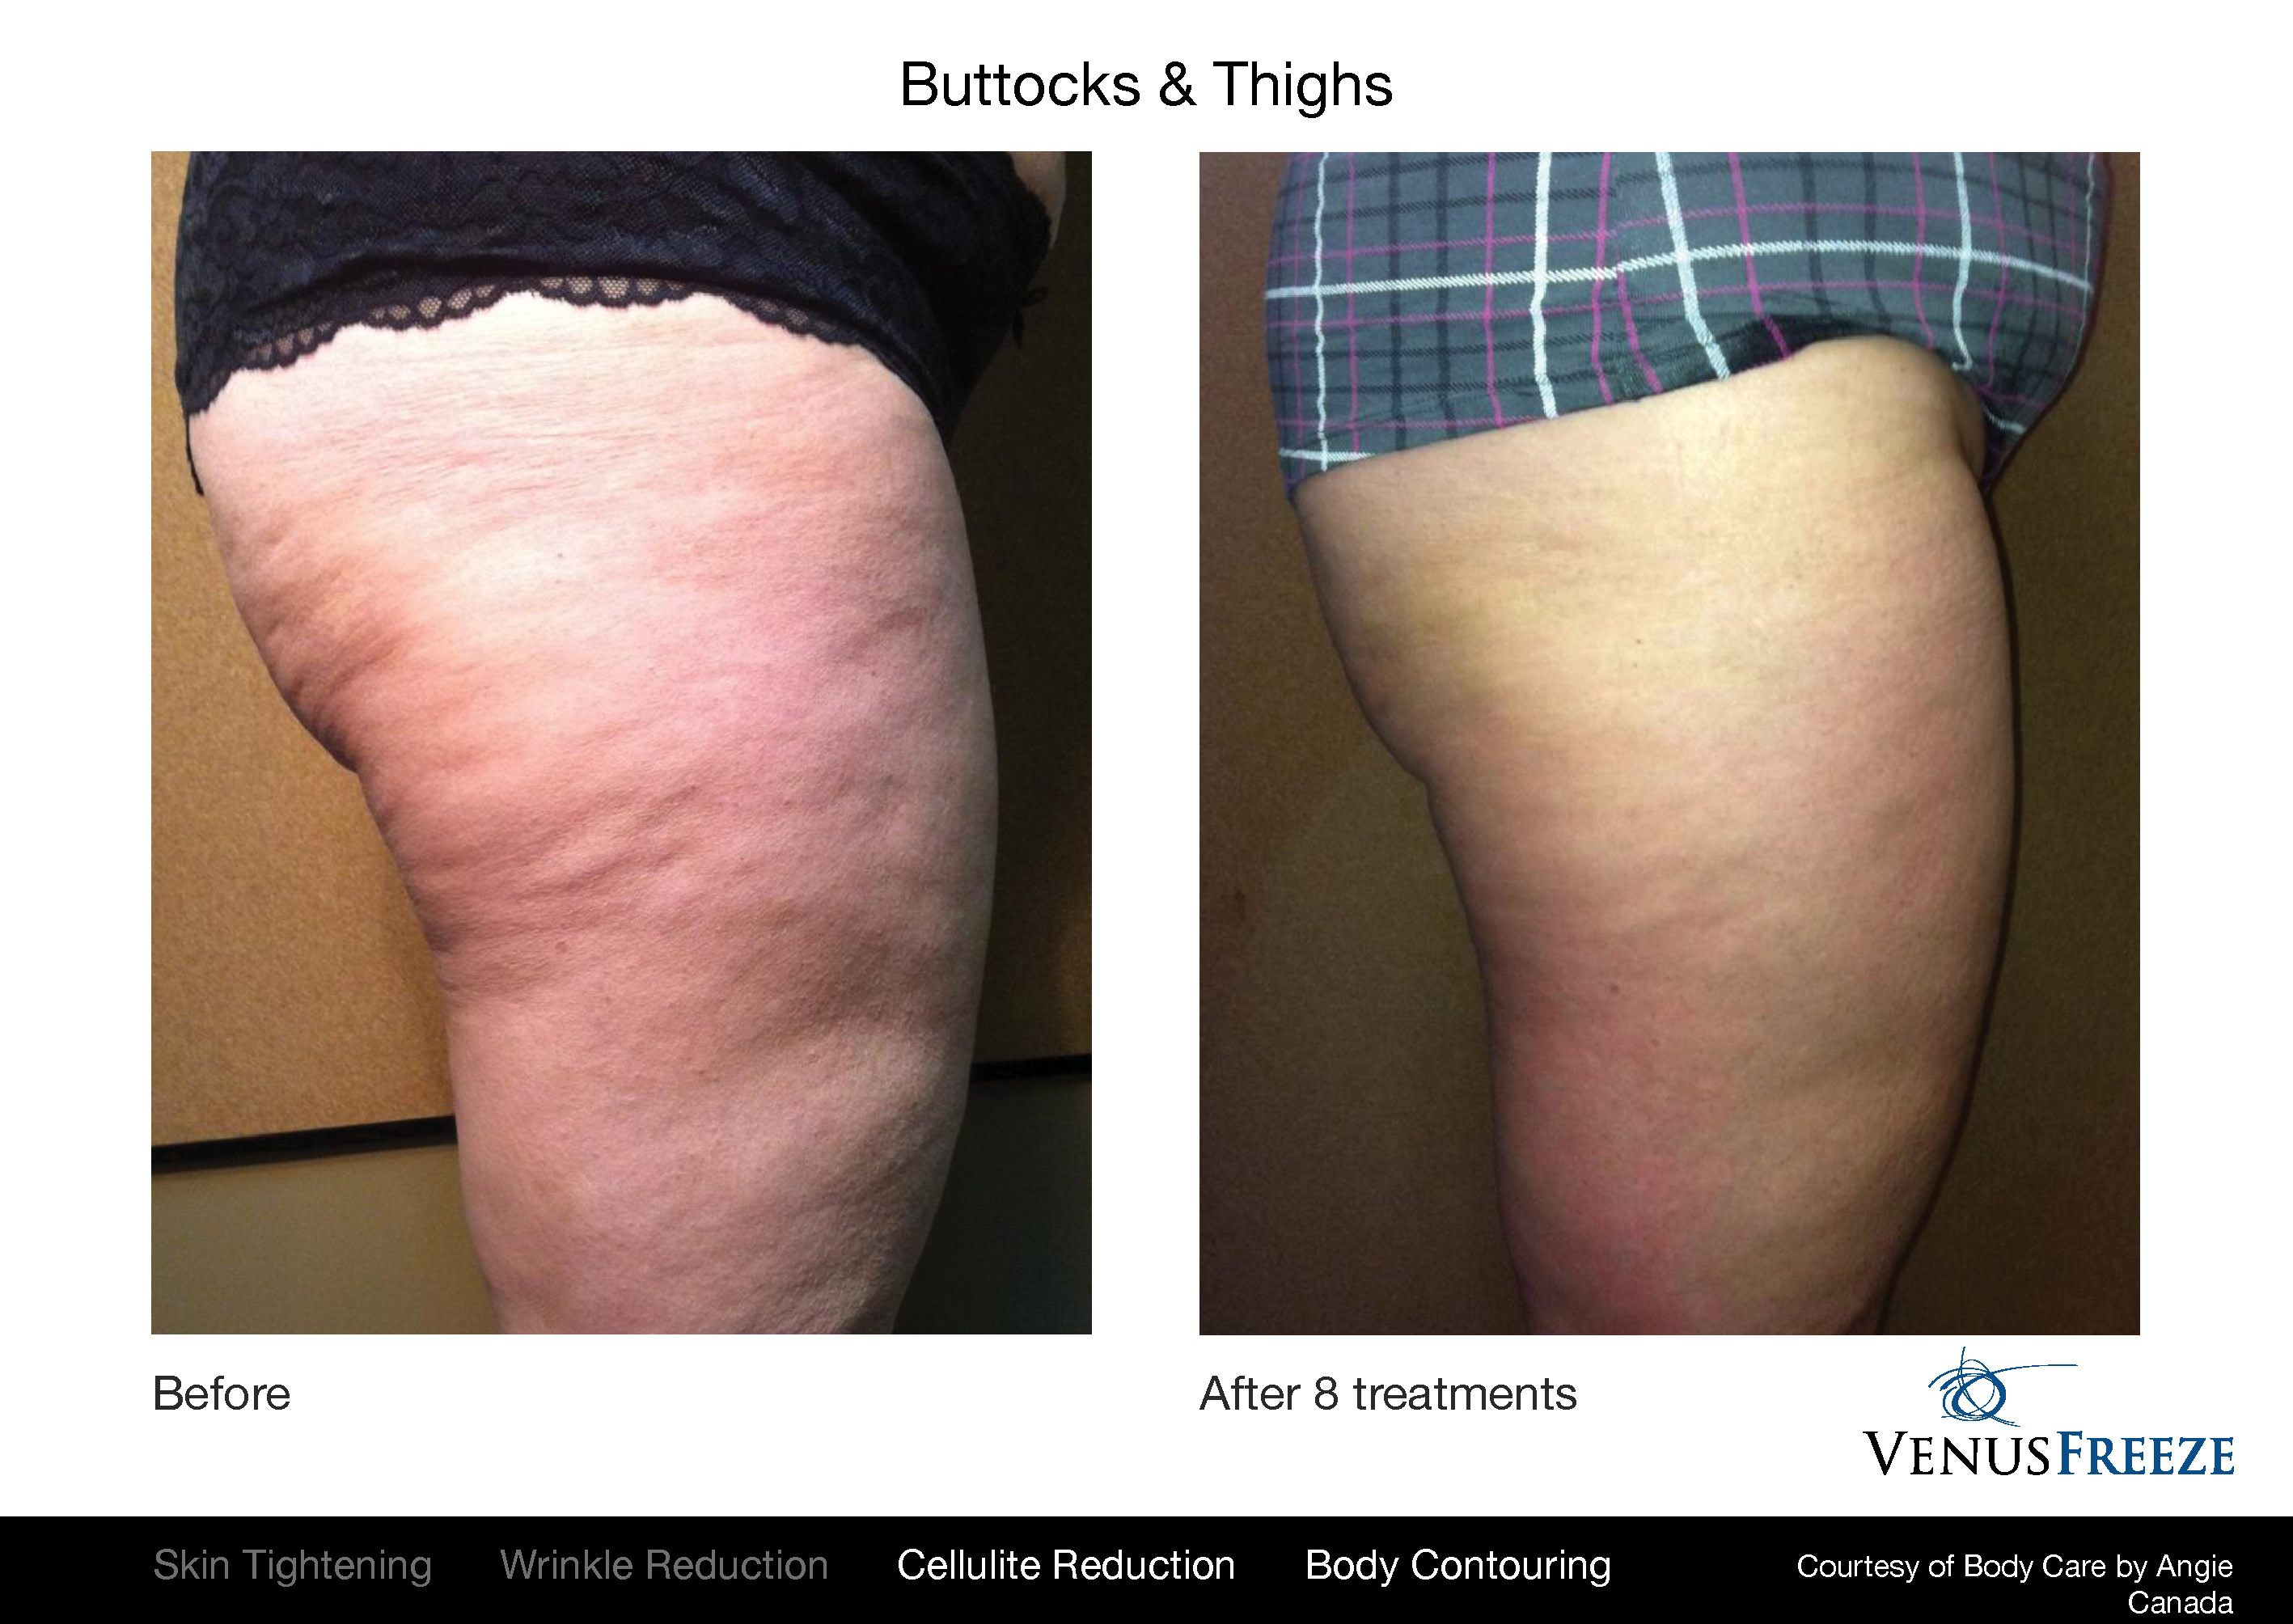 Venus Freeze before and after results on body, butt, and thighs.